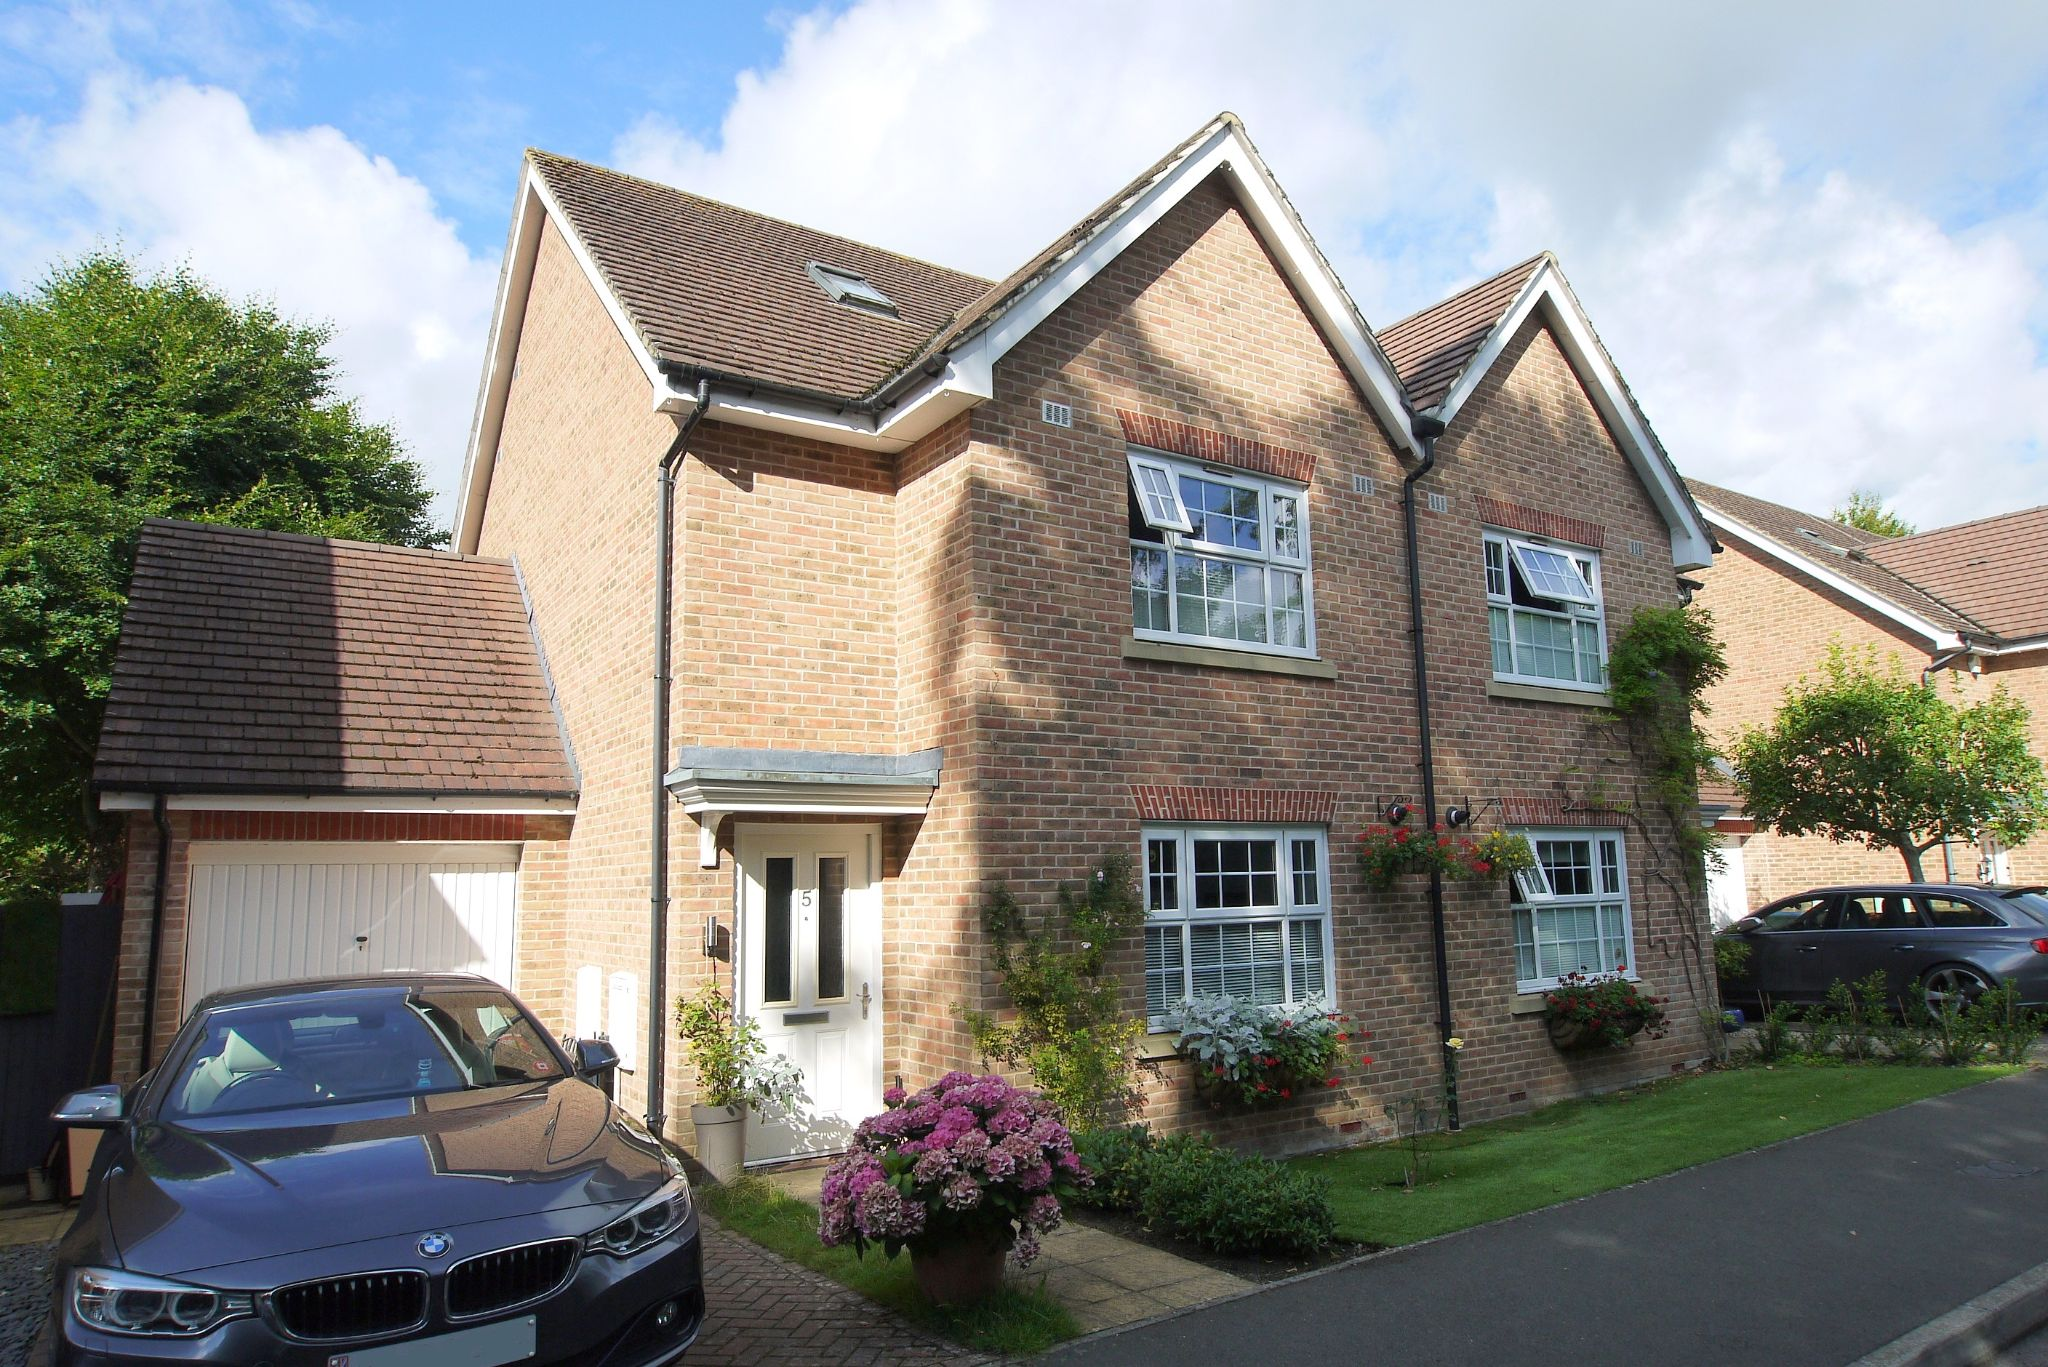 4 bedroom semi-detached house For Sale in Sevenoaks - Photograph 1